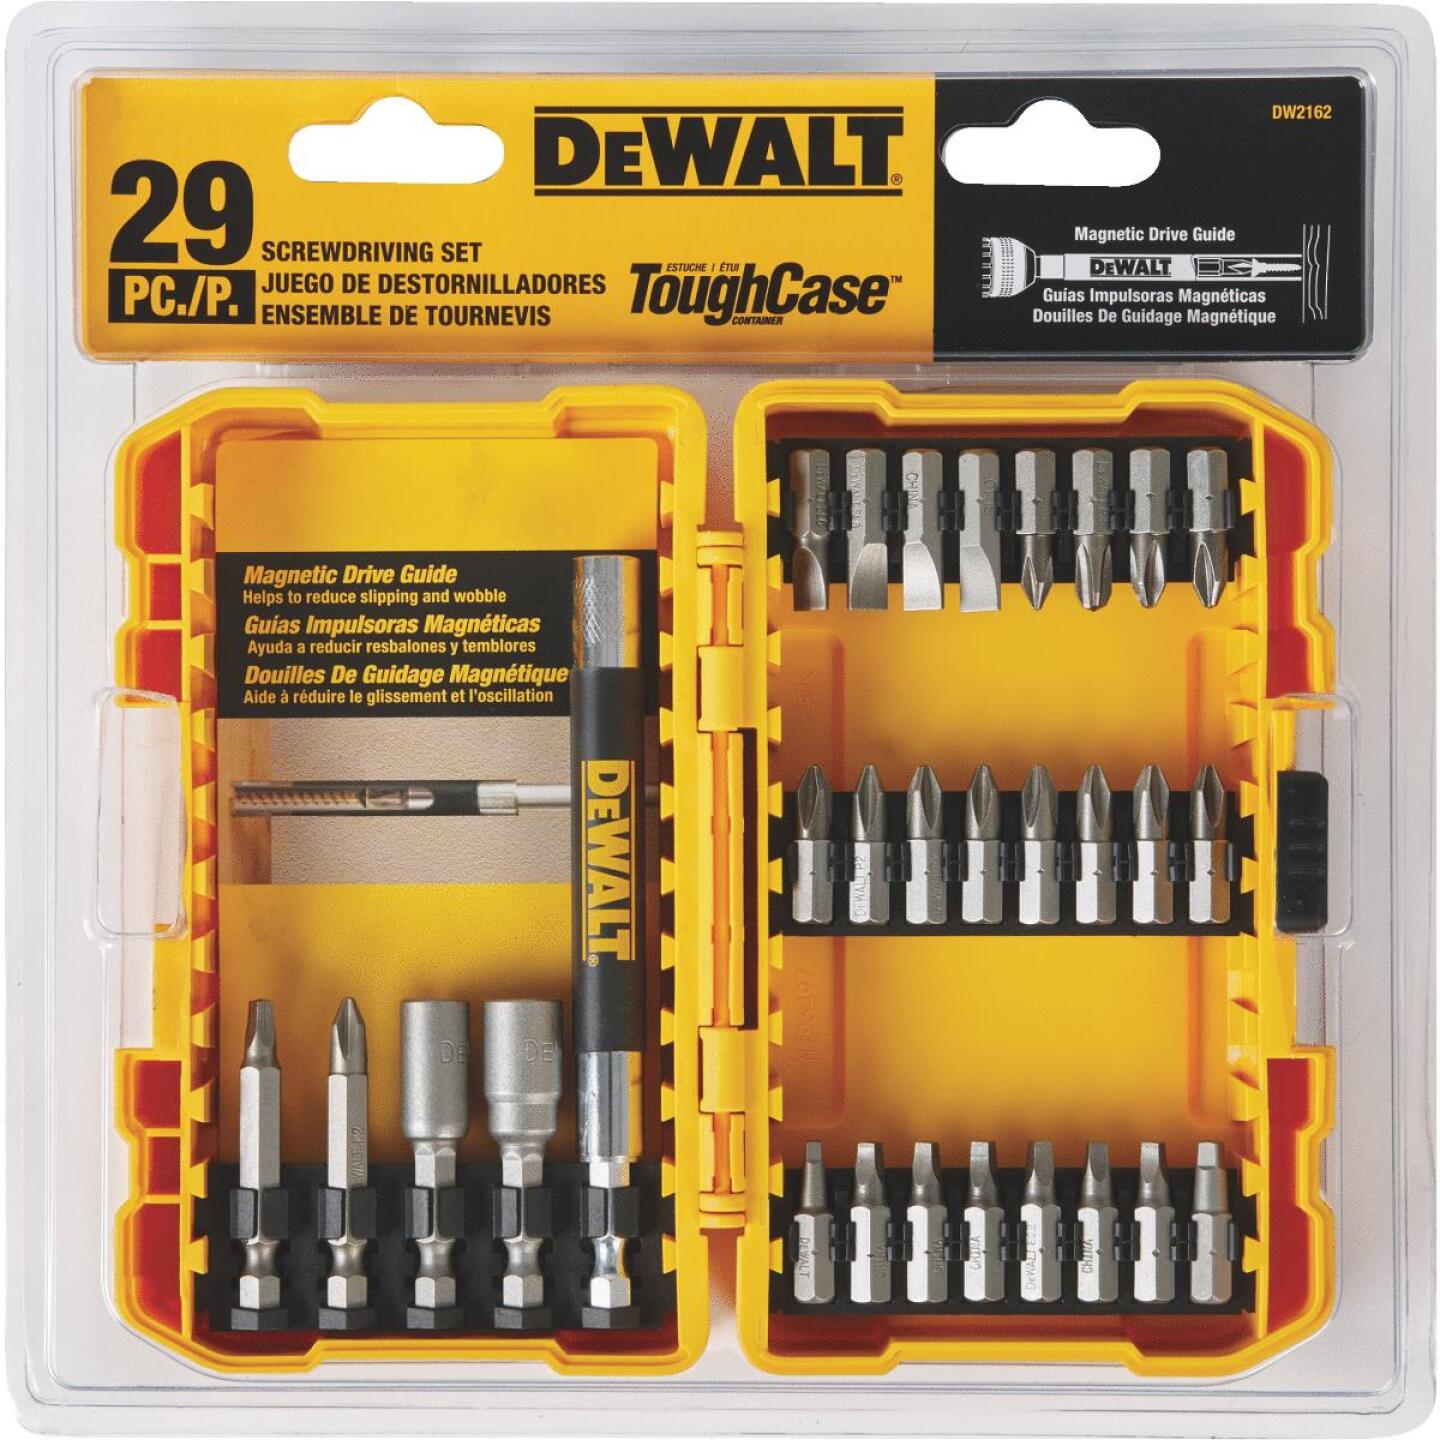 DeWalt 29-Piece Screwdriver Bit Set Image 3